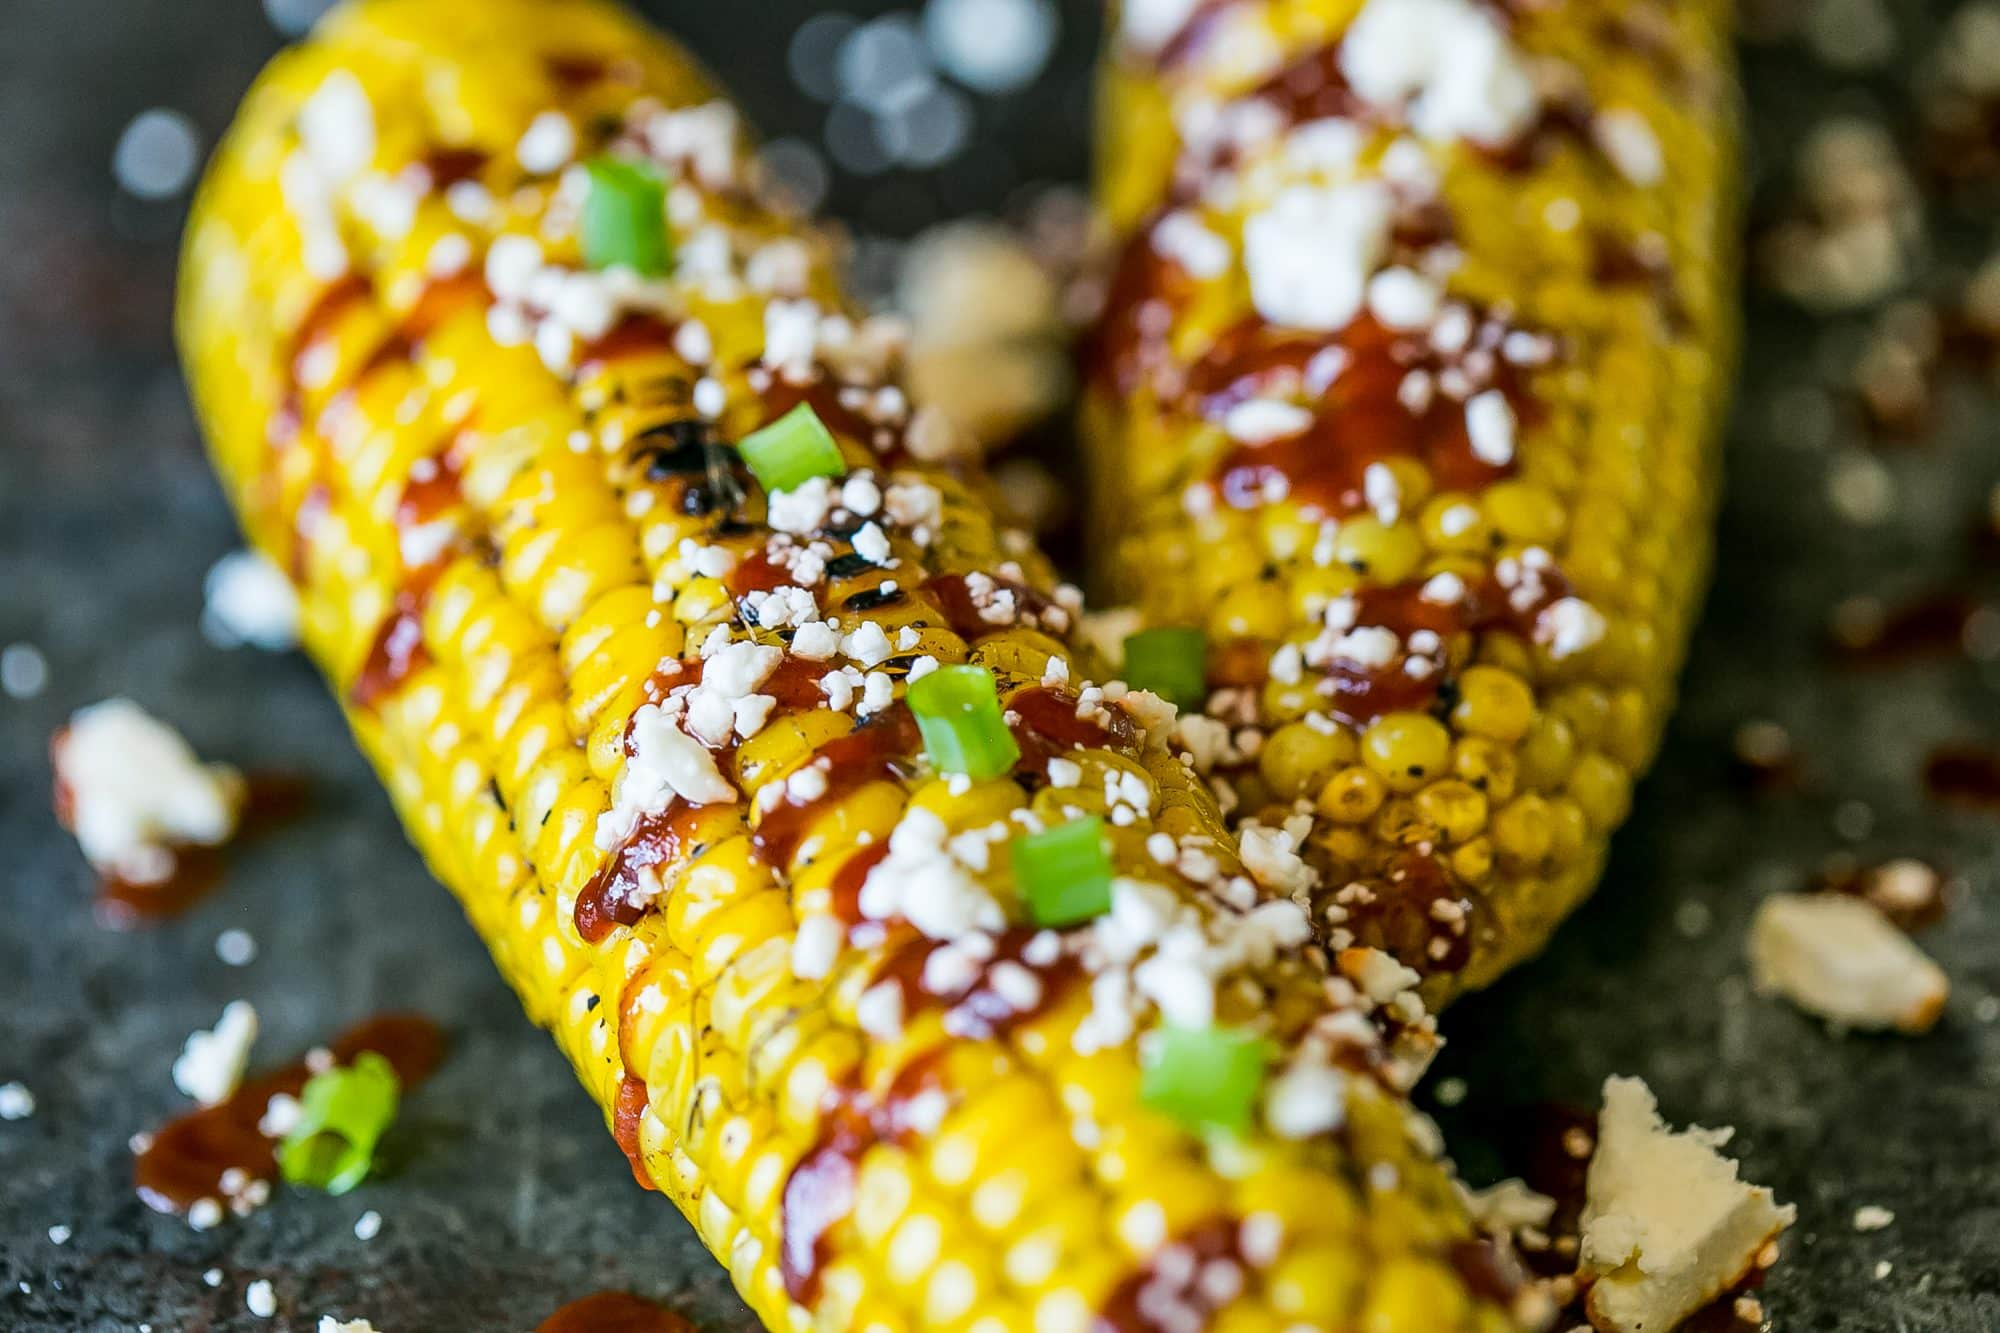 quick and easy mexican style street corn on the cob - with cotija cheese and sriracha!